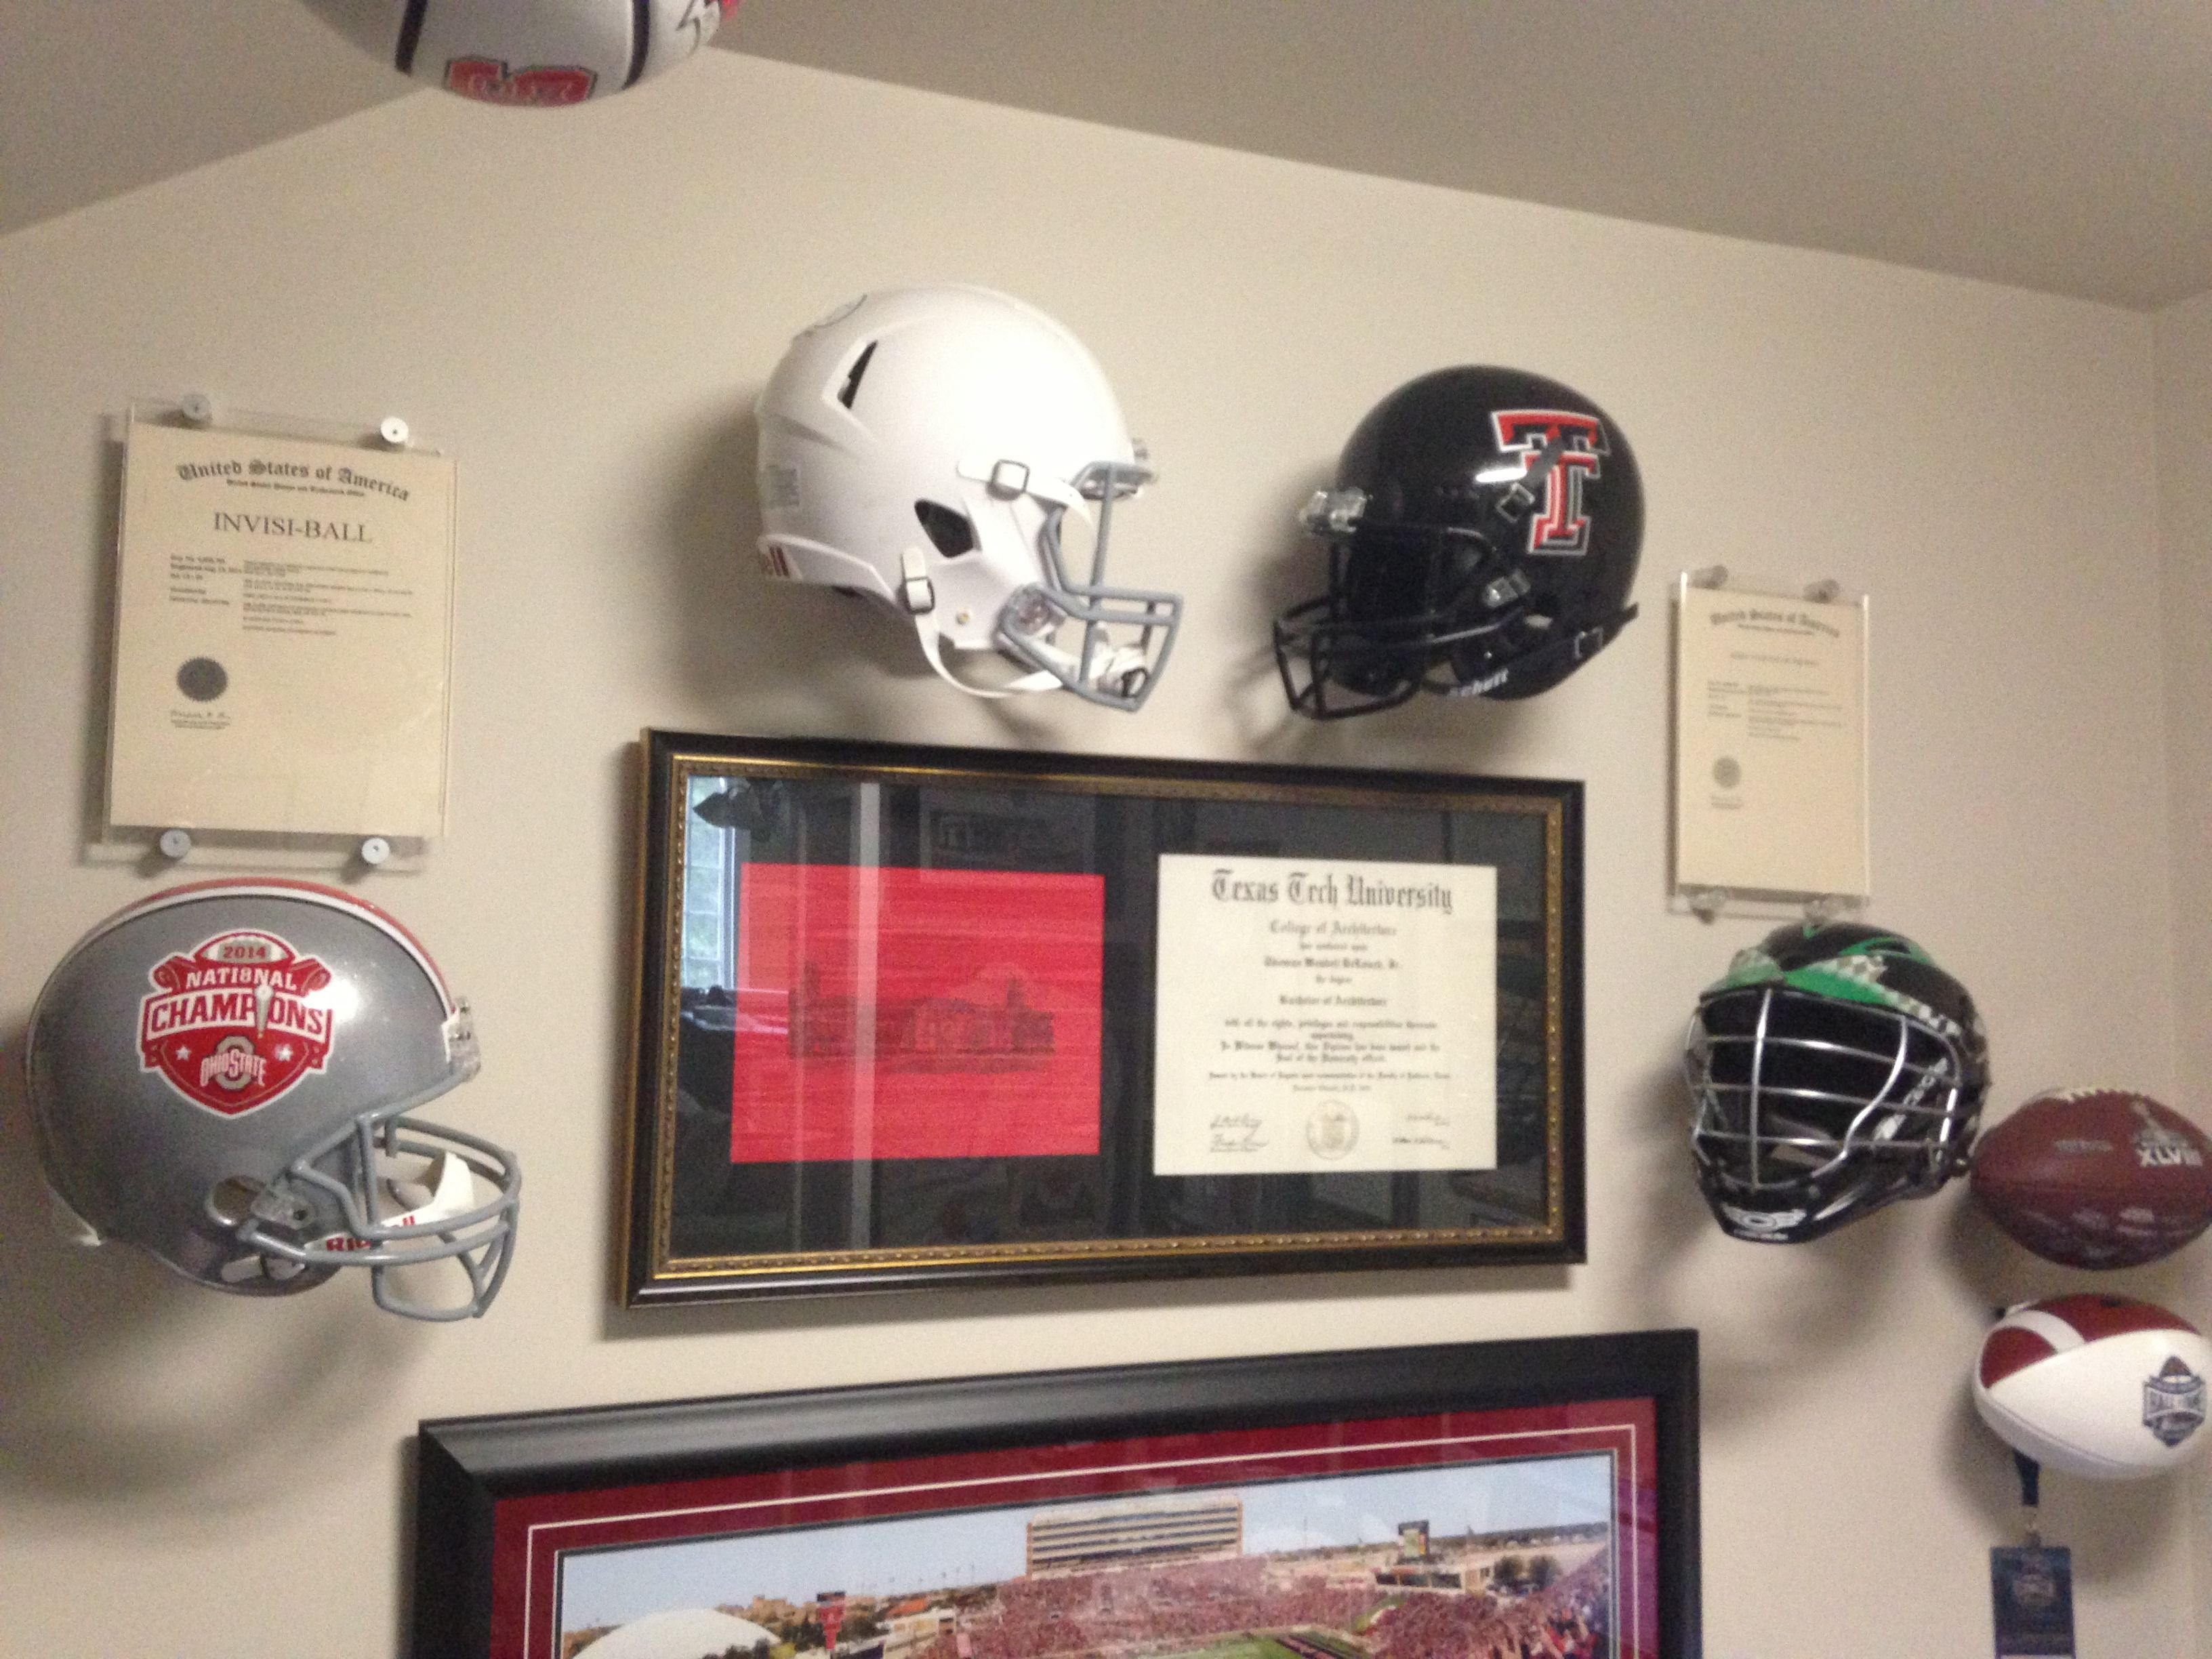 Man Cave Sports Bar Ideas : Man cave sports bar media room or office the invisi ball wall